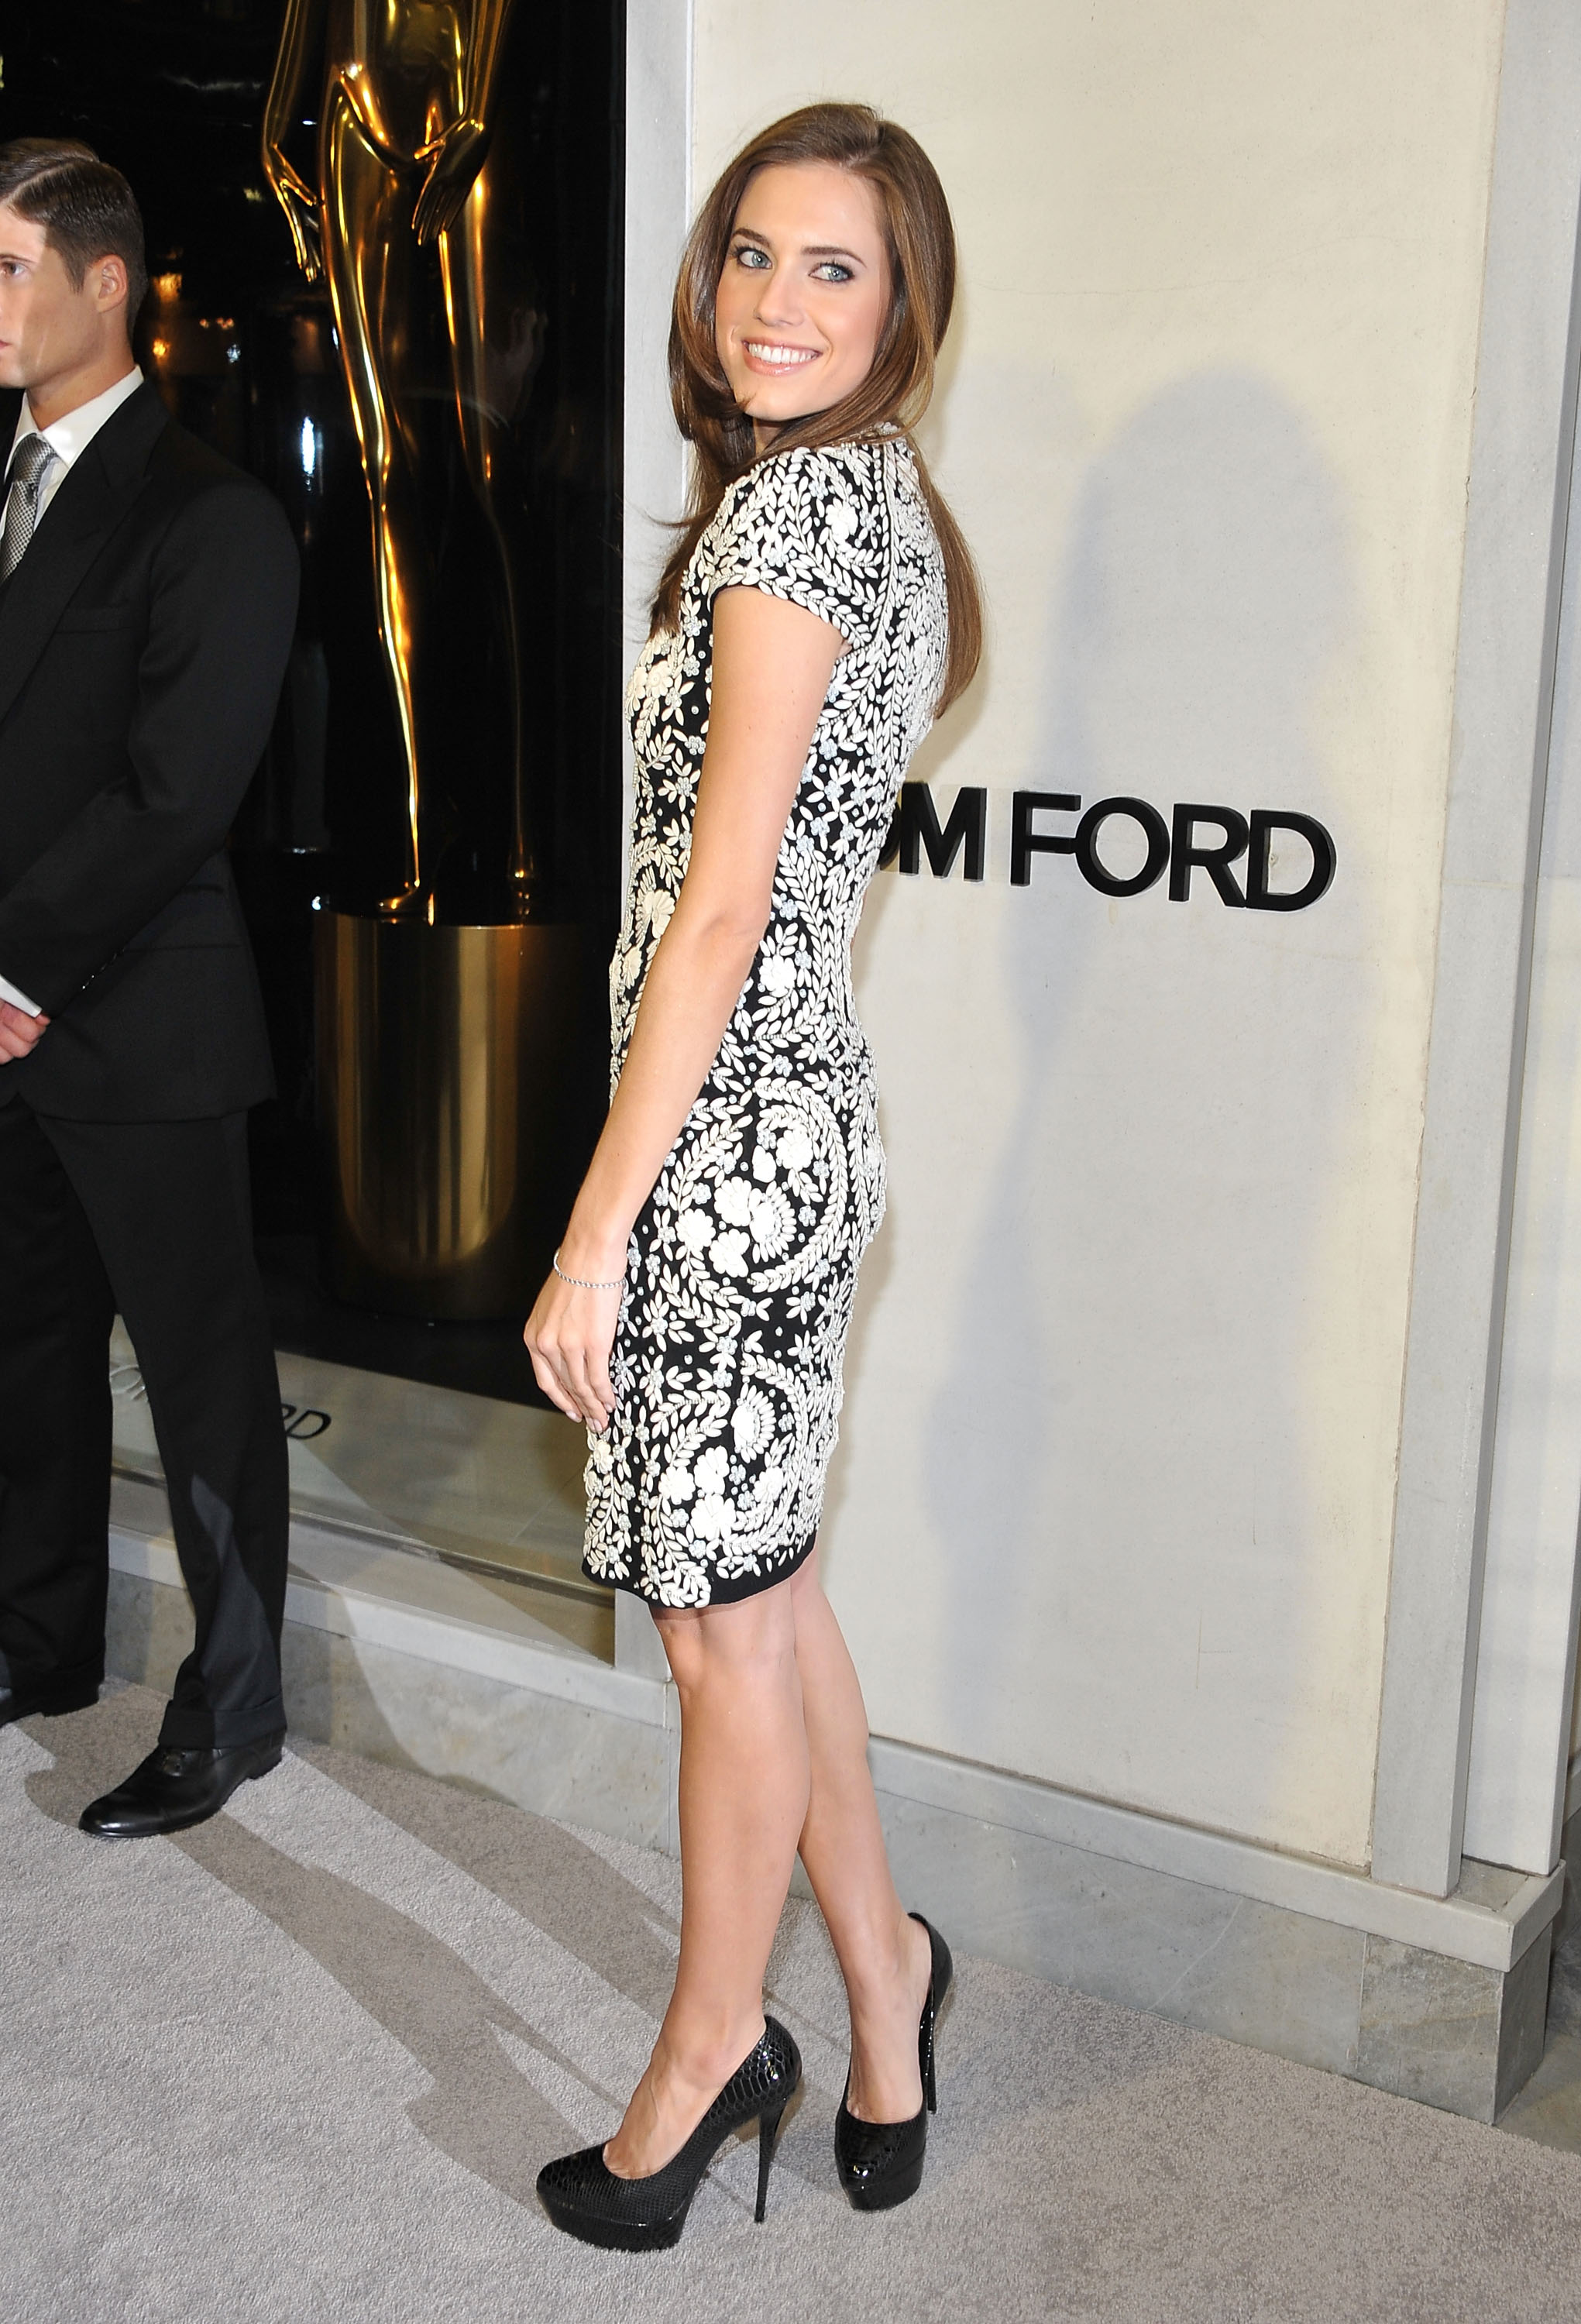 Allison Williams rocked a black-and-white number for the Tom Ford pre-Oscars event on Thursday night.